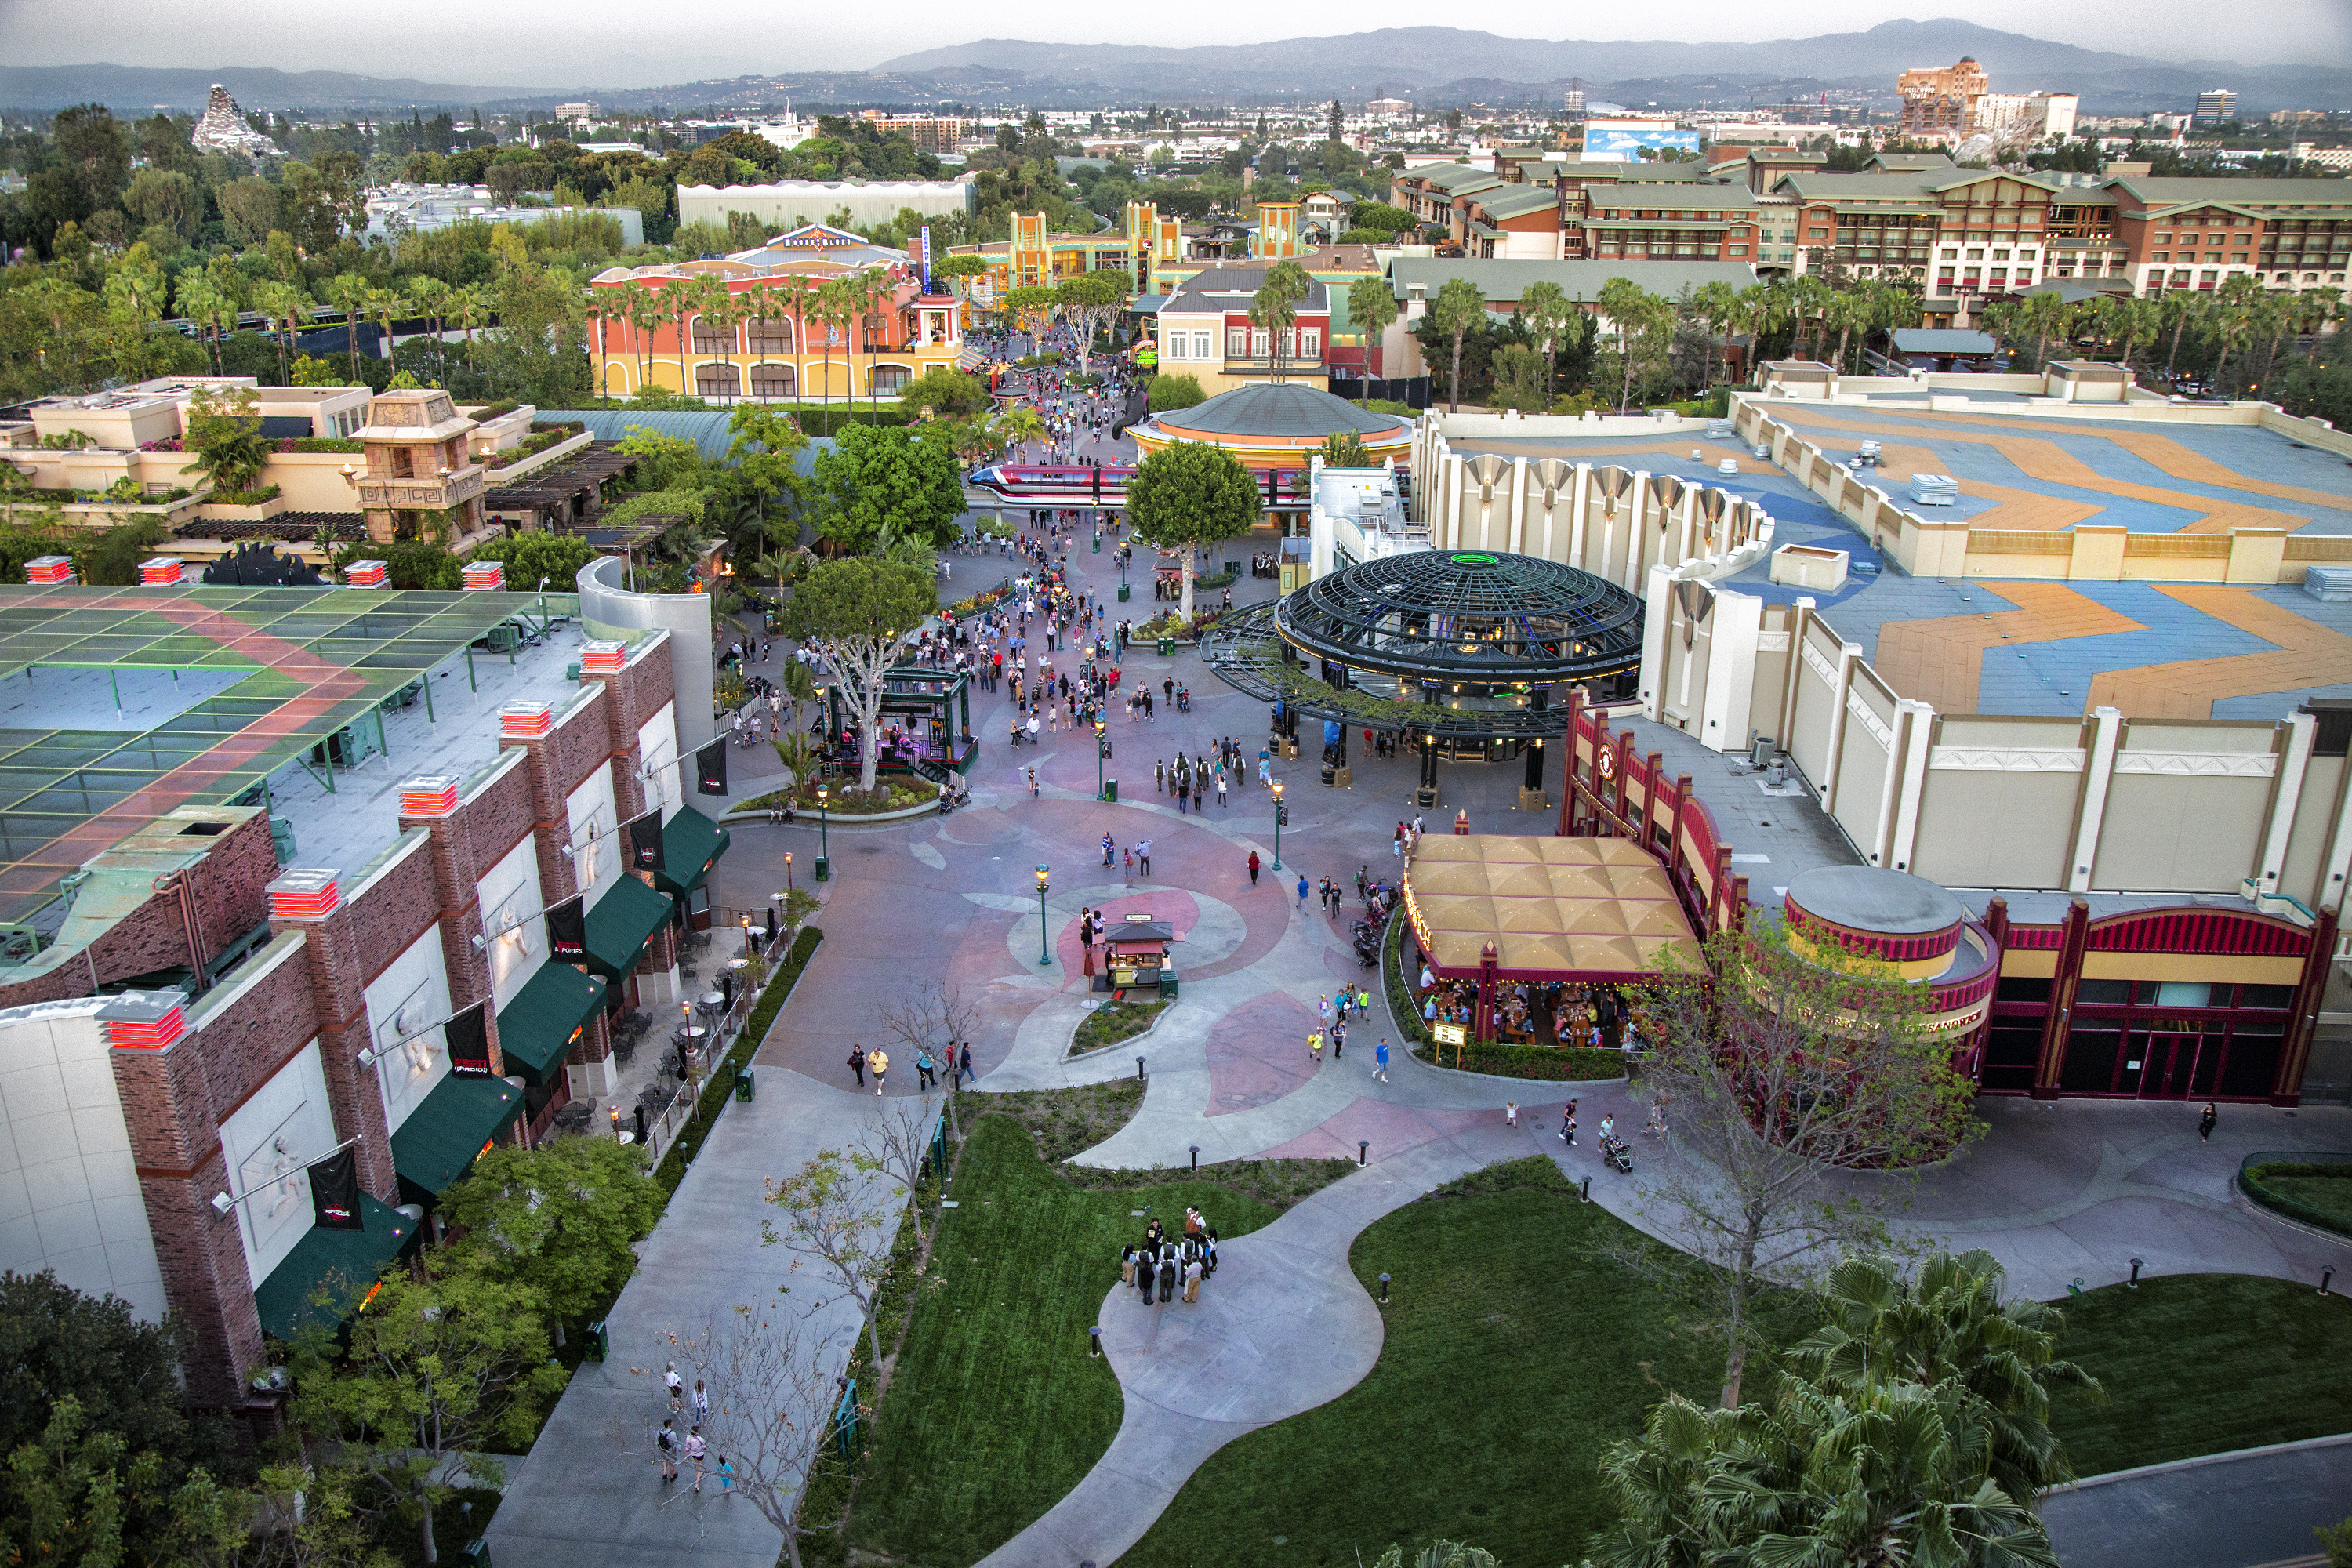 Downtown Disney District - Disneyland Resort